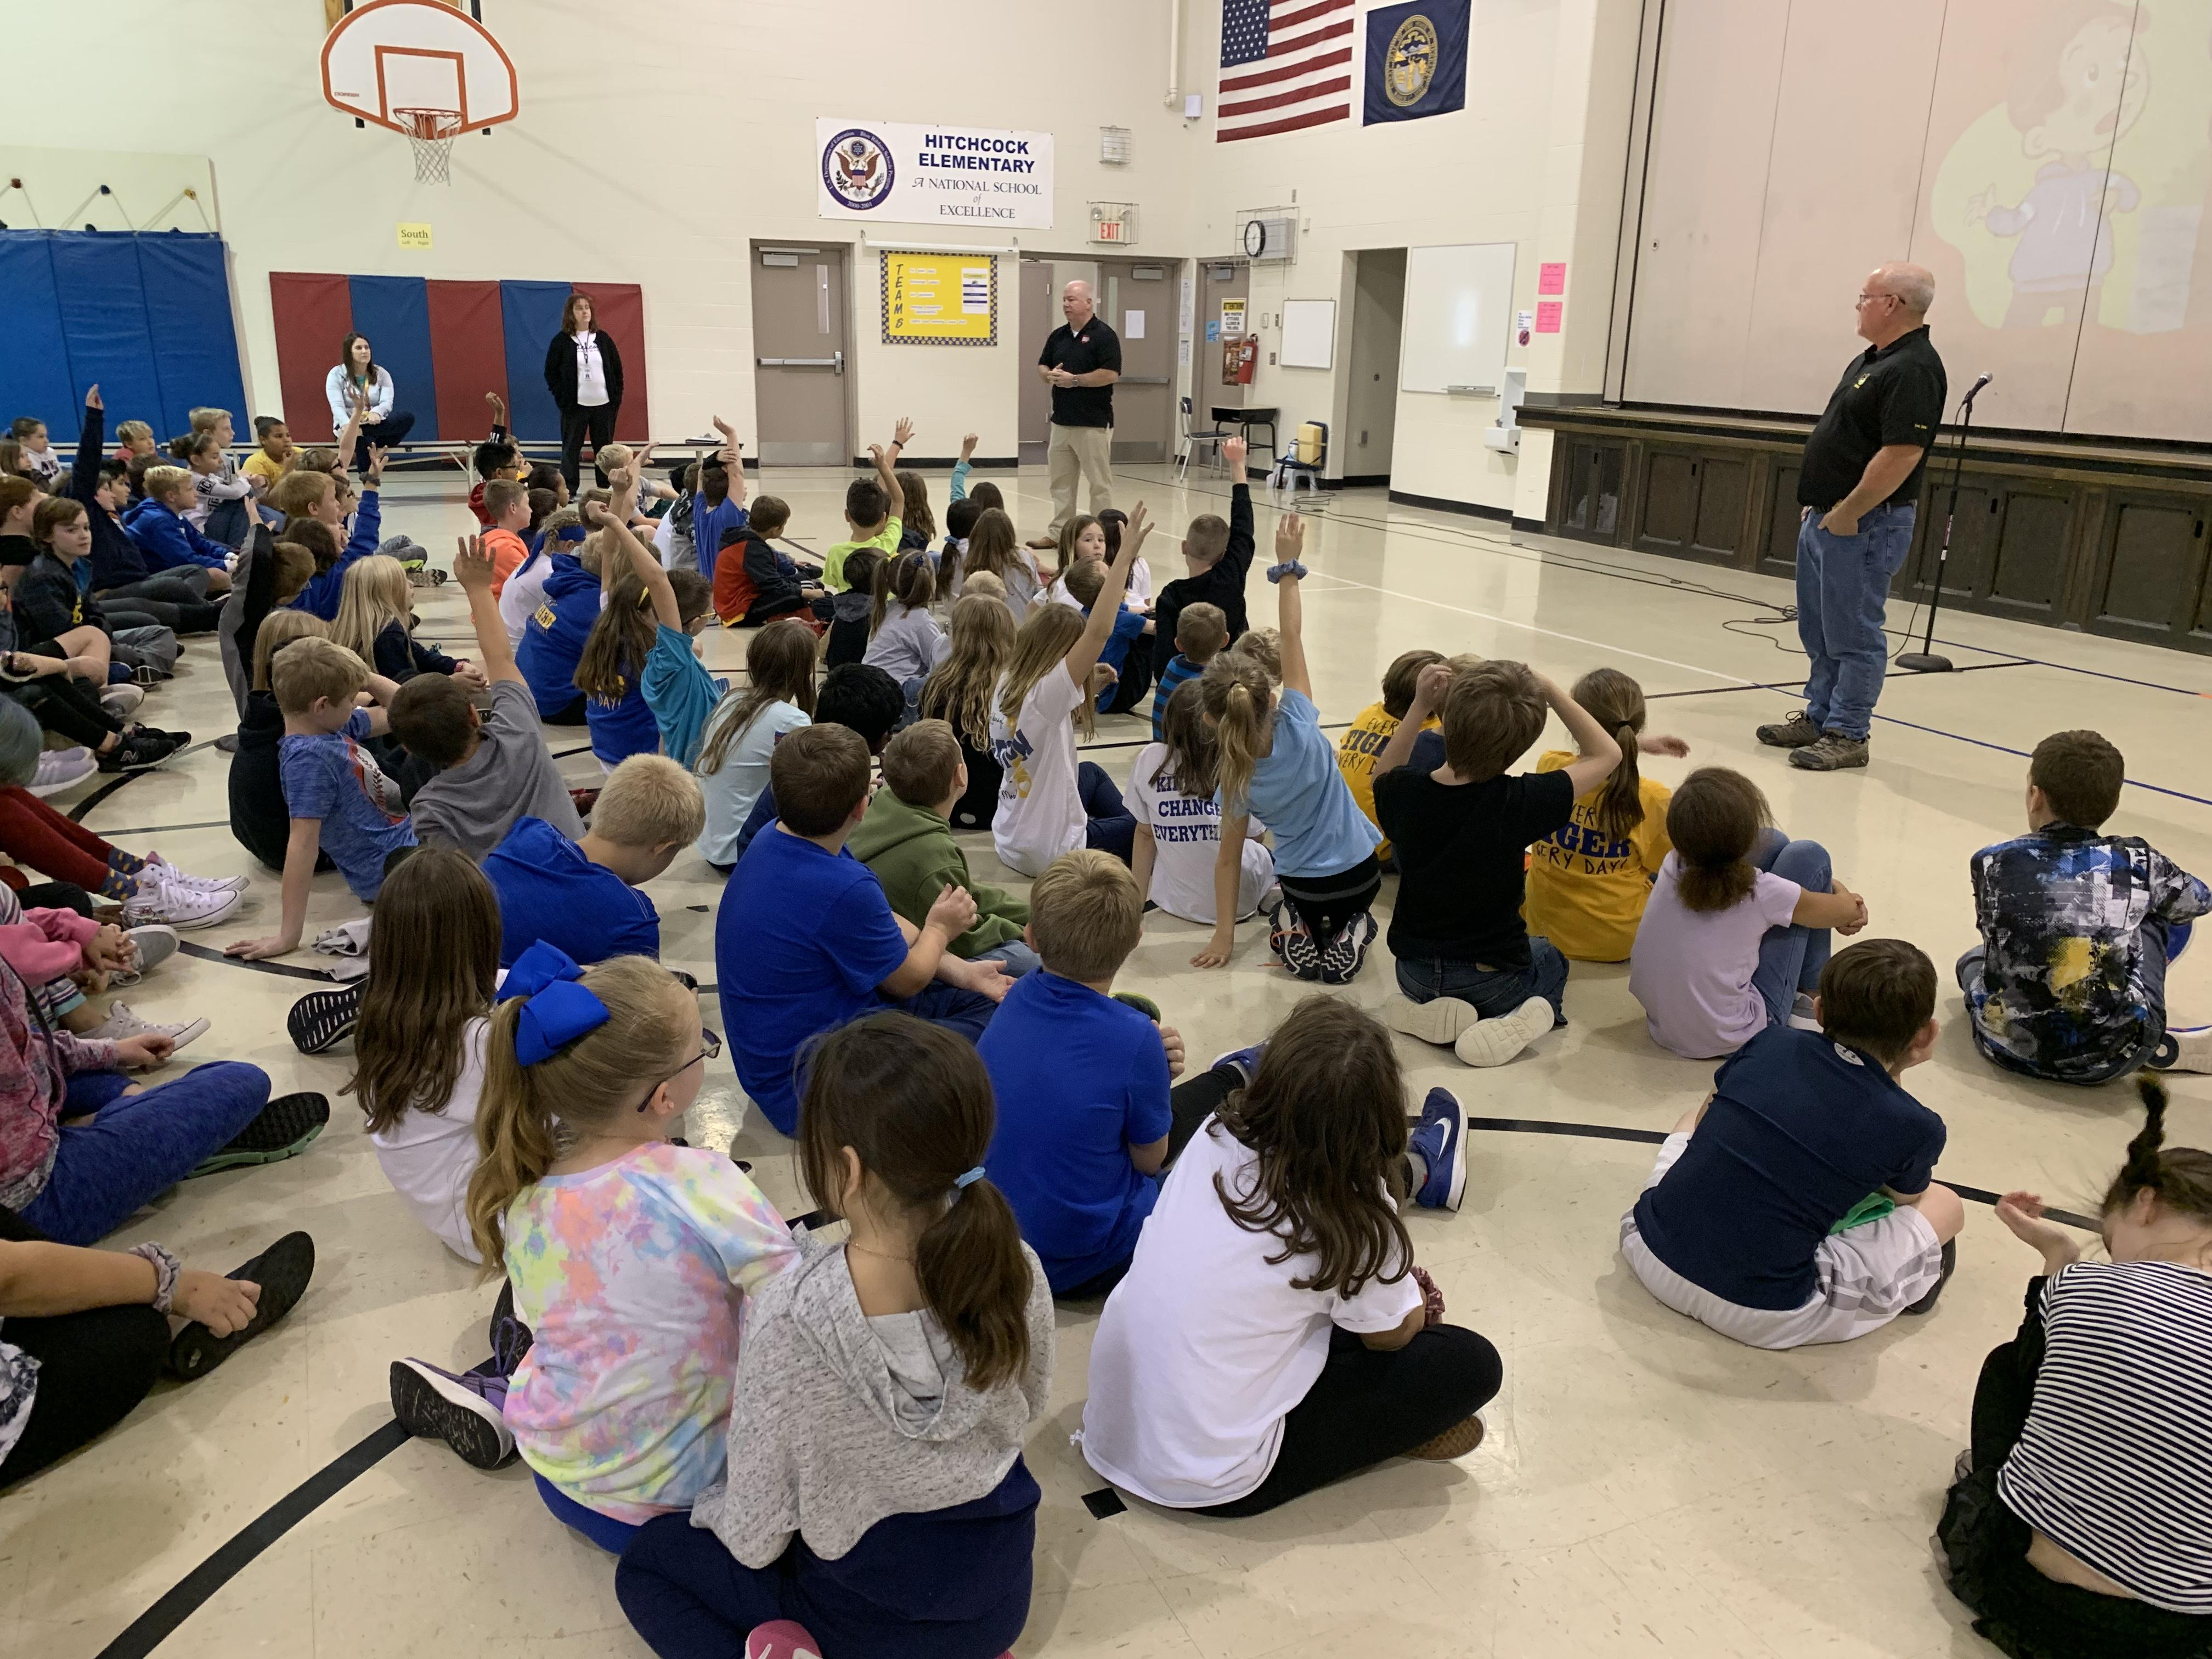 Two DEA agents answering questions at an elementary school.